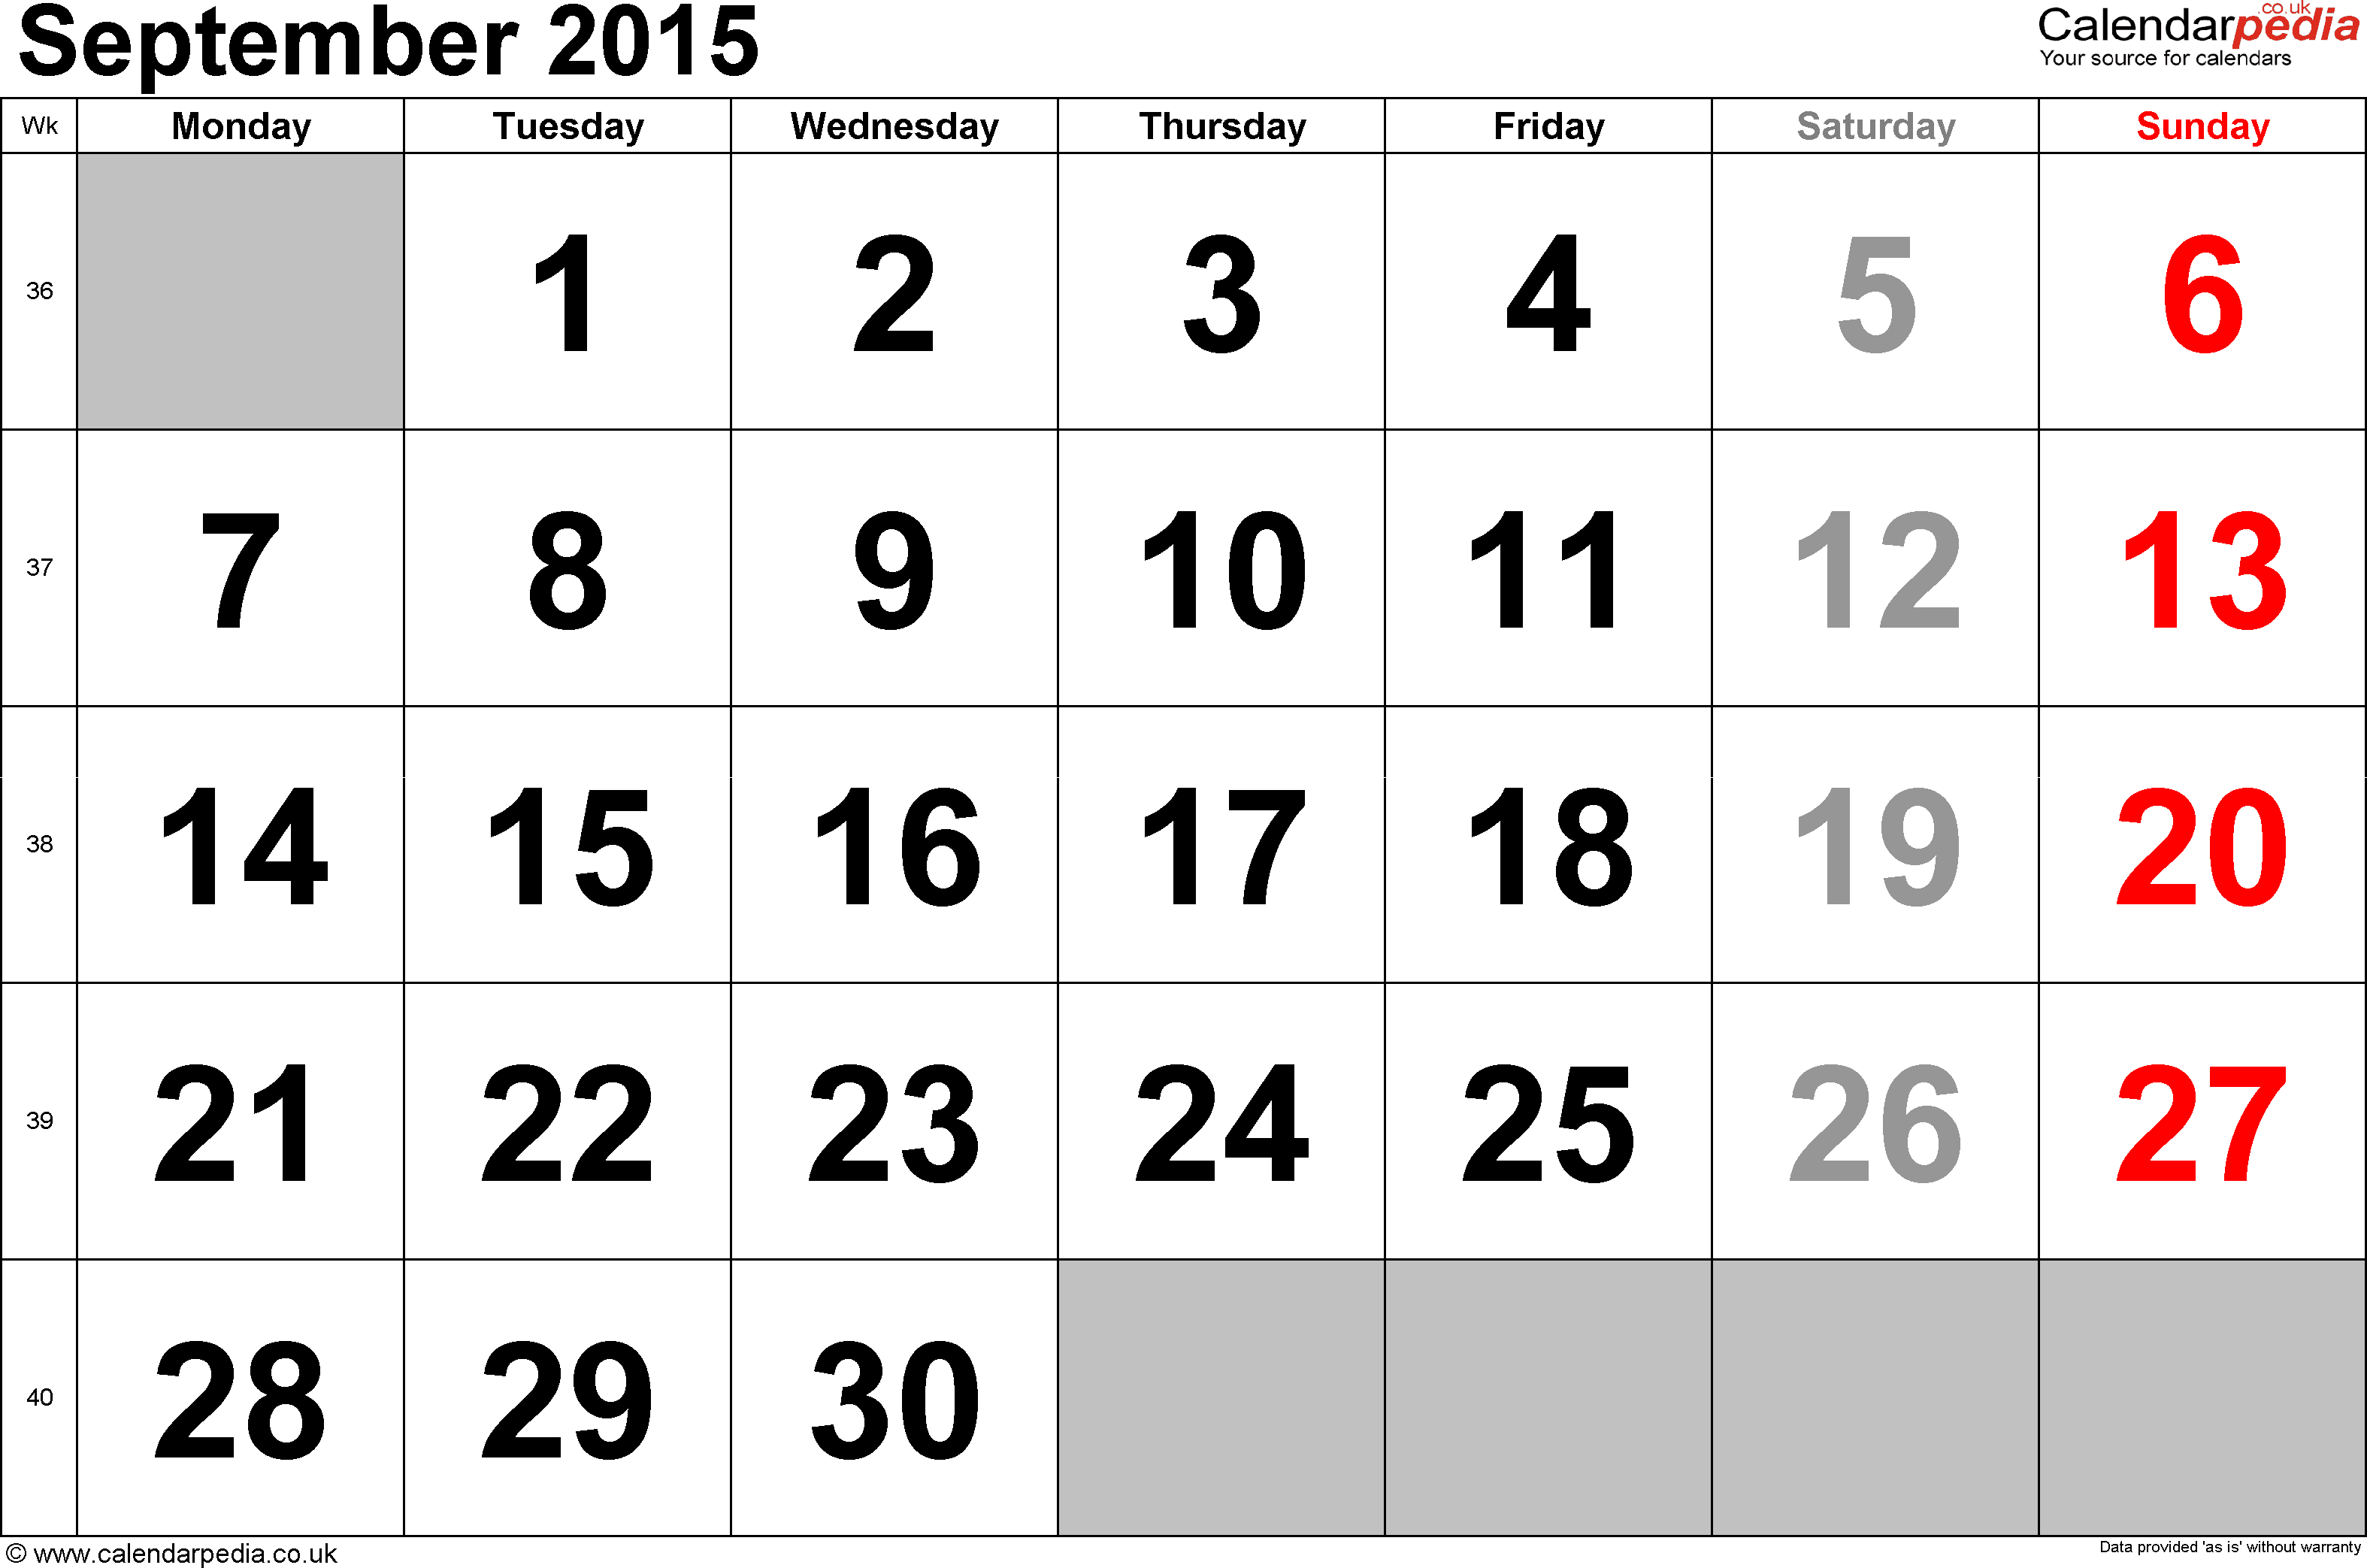 calendar september 2015 uk bank holidays excel pdf word templates. Black Bedroom Furniture Sets. Home Design Ideas